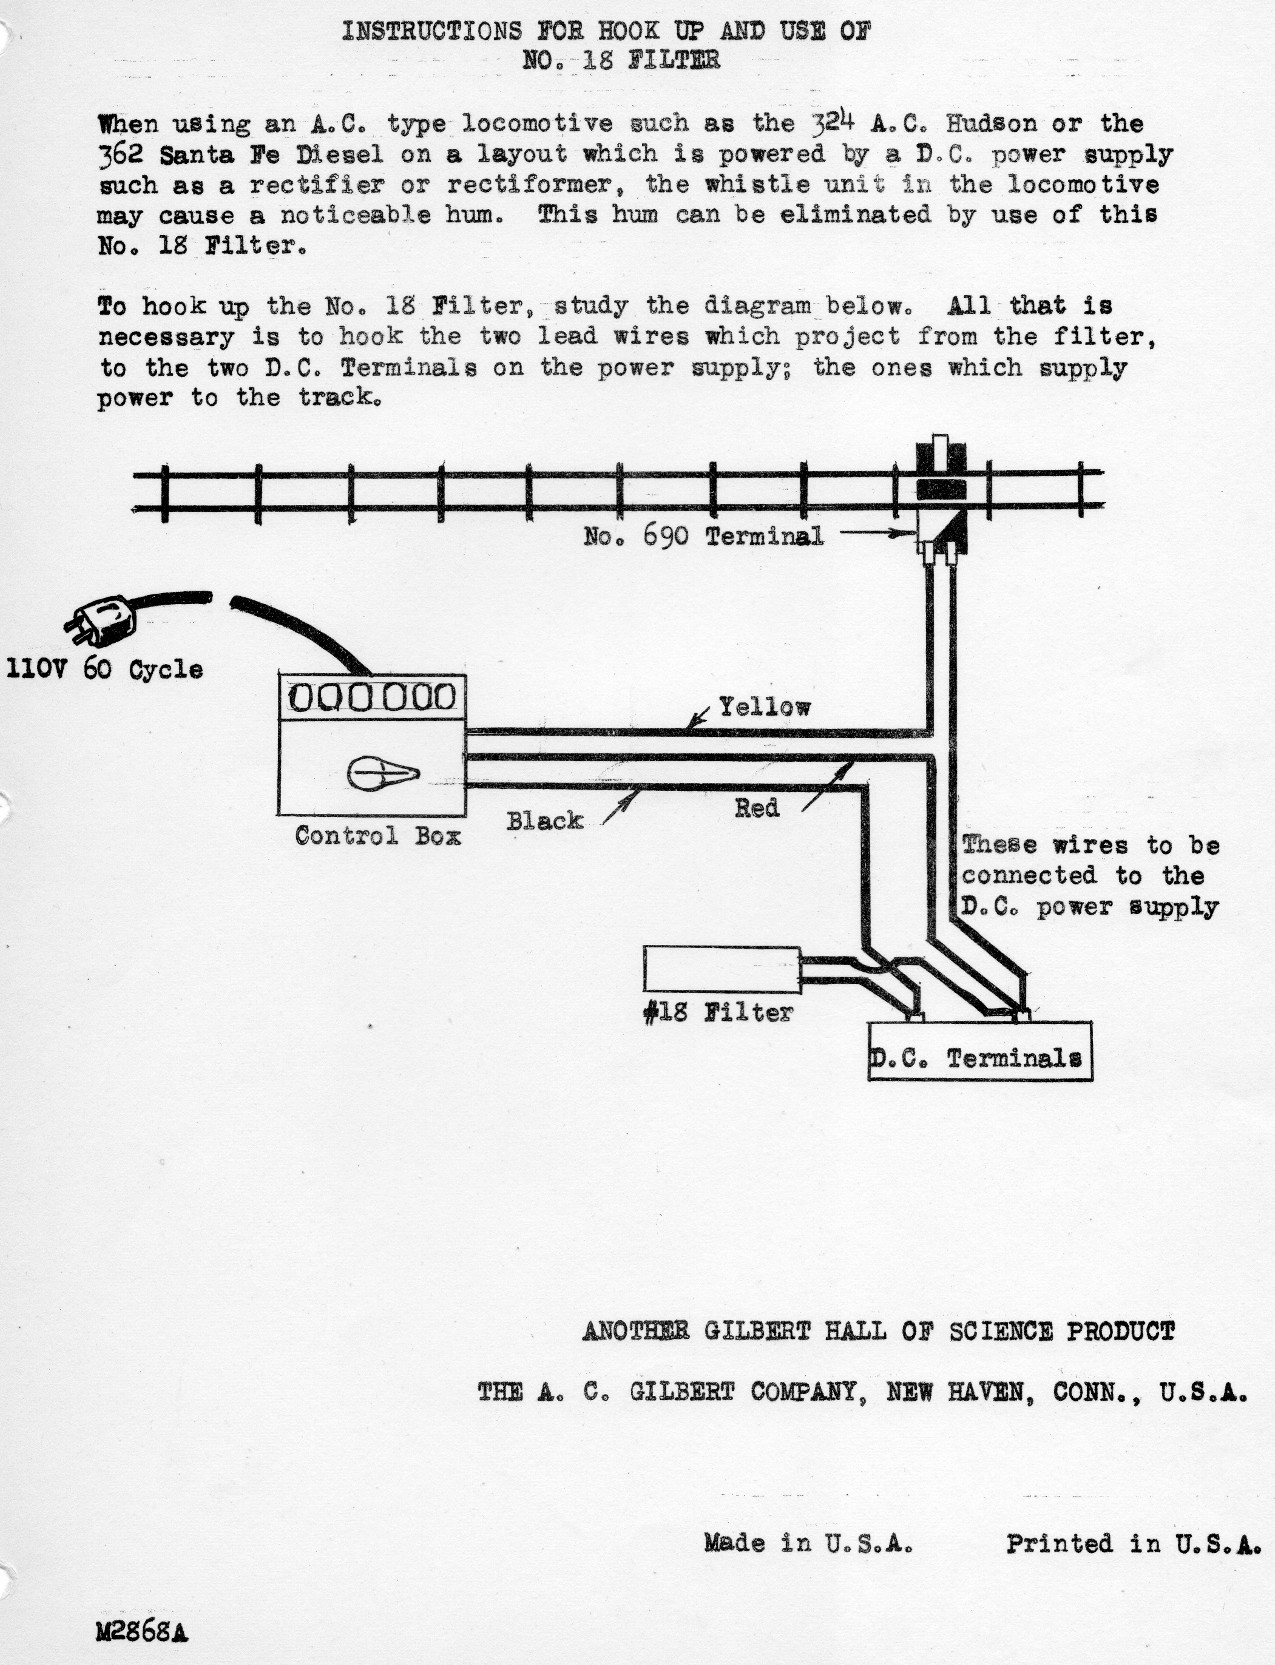 Instructions for Hook Up and Use of No. 16 Filter